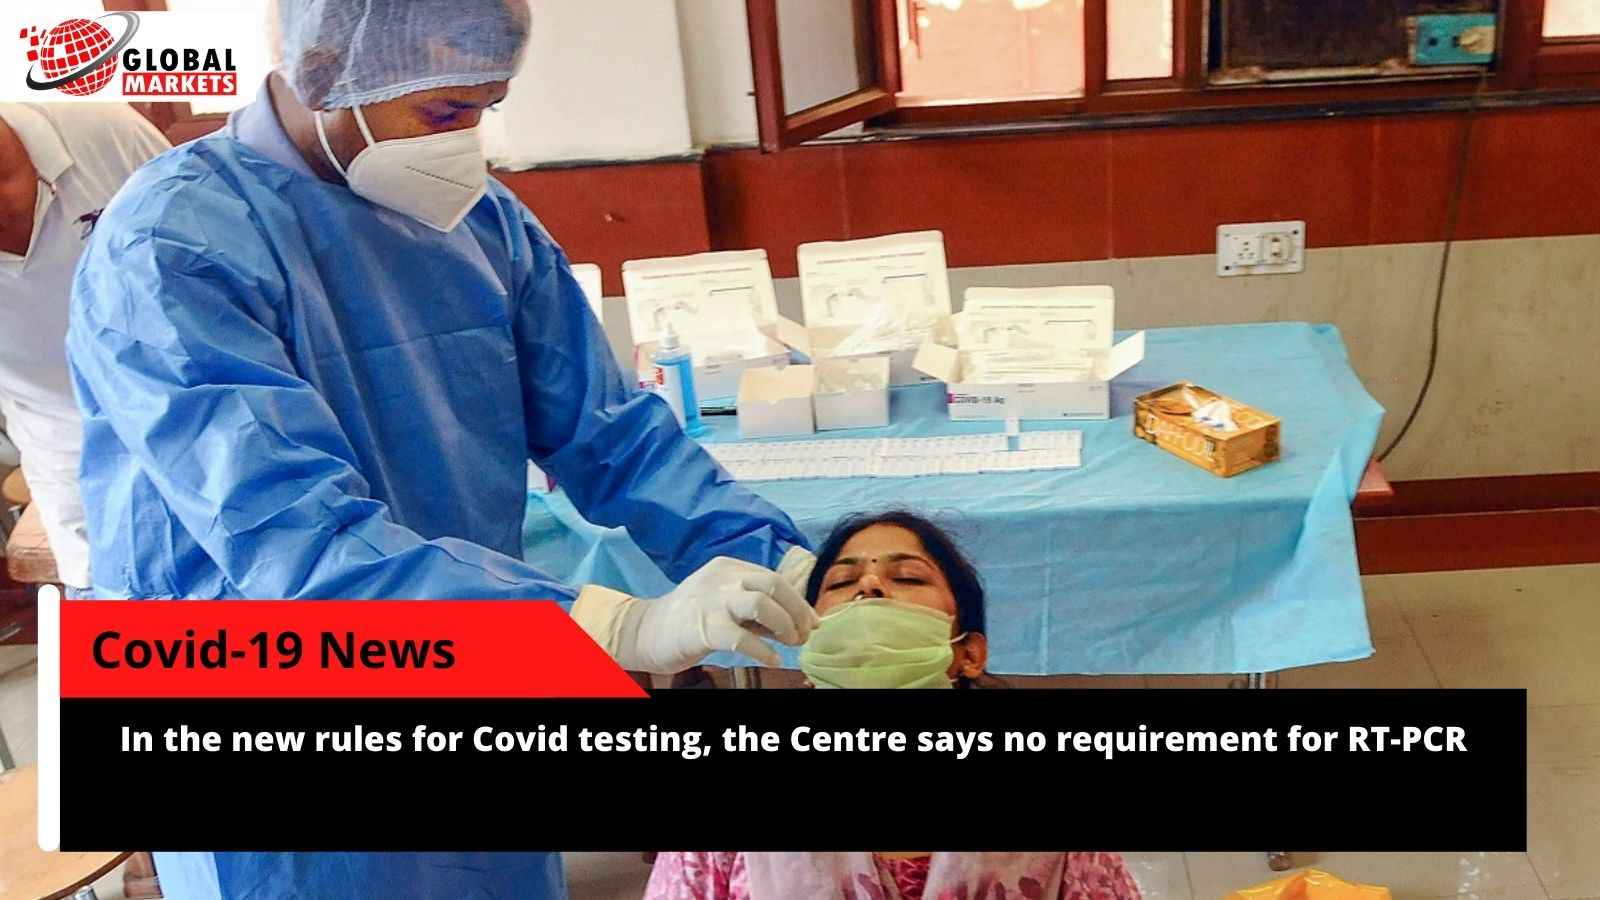 In the new rules for Covid testing, the Centre says no requirement for RT-PCR